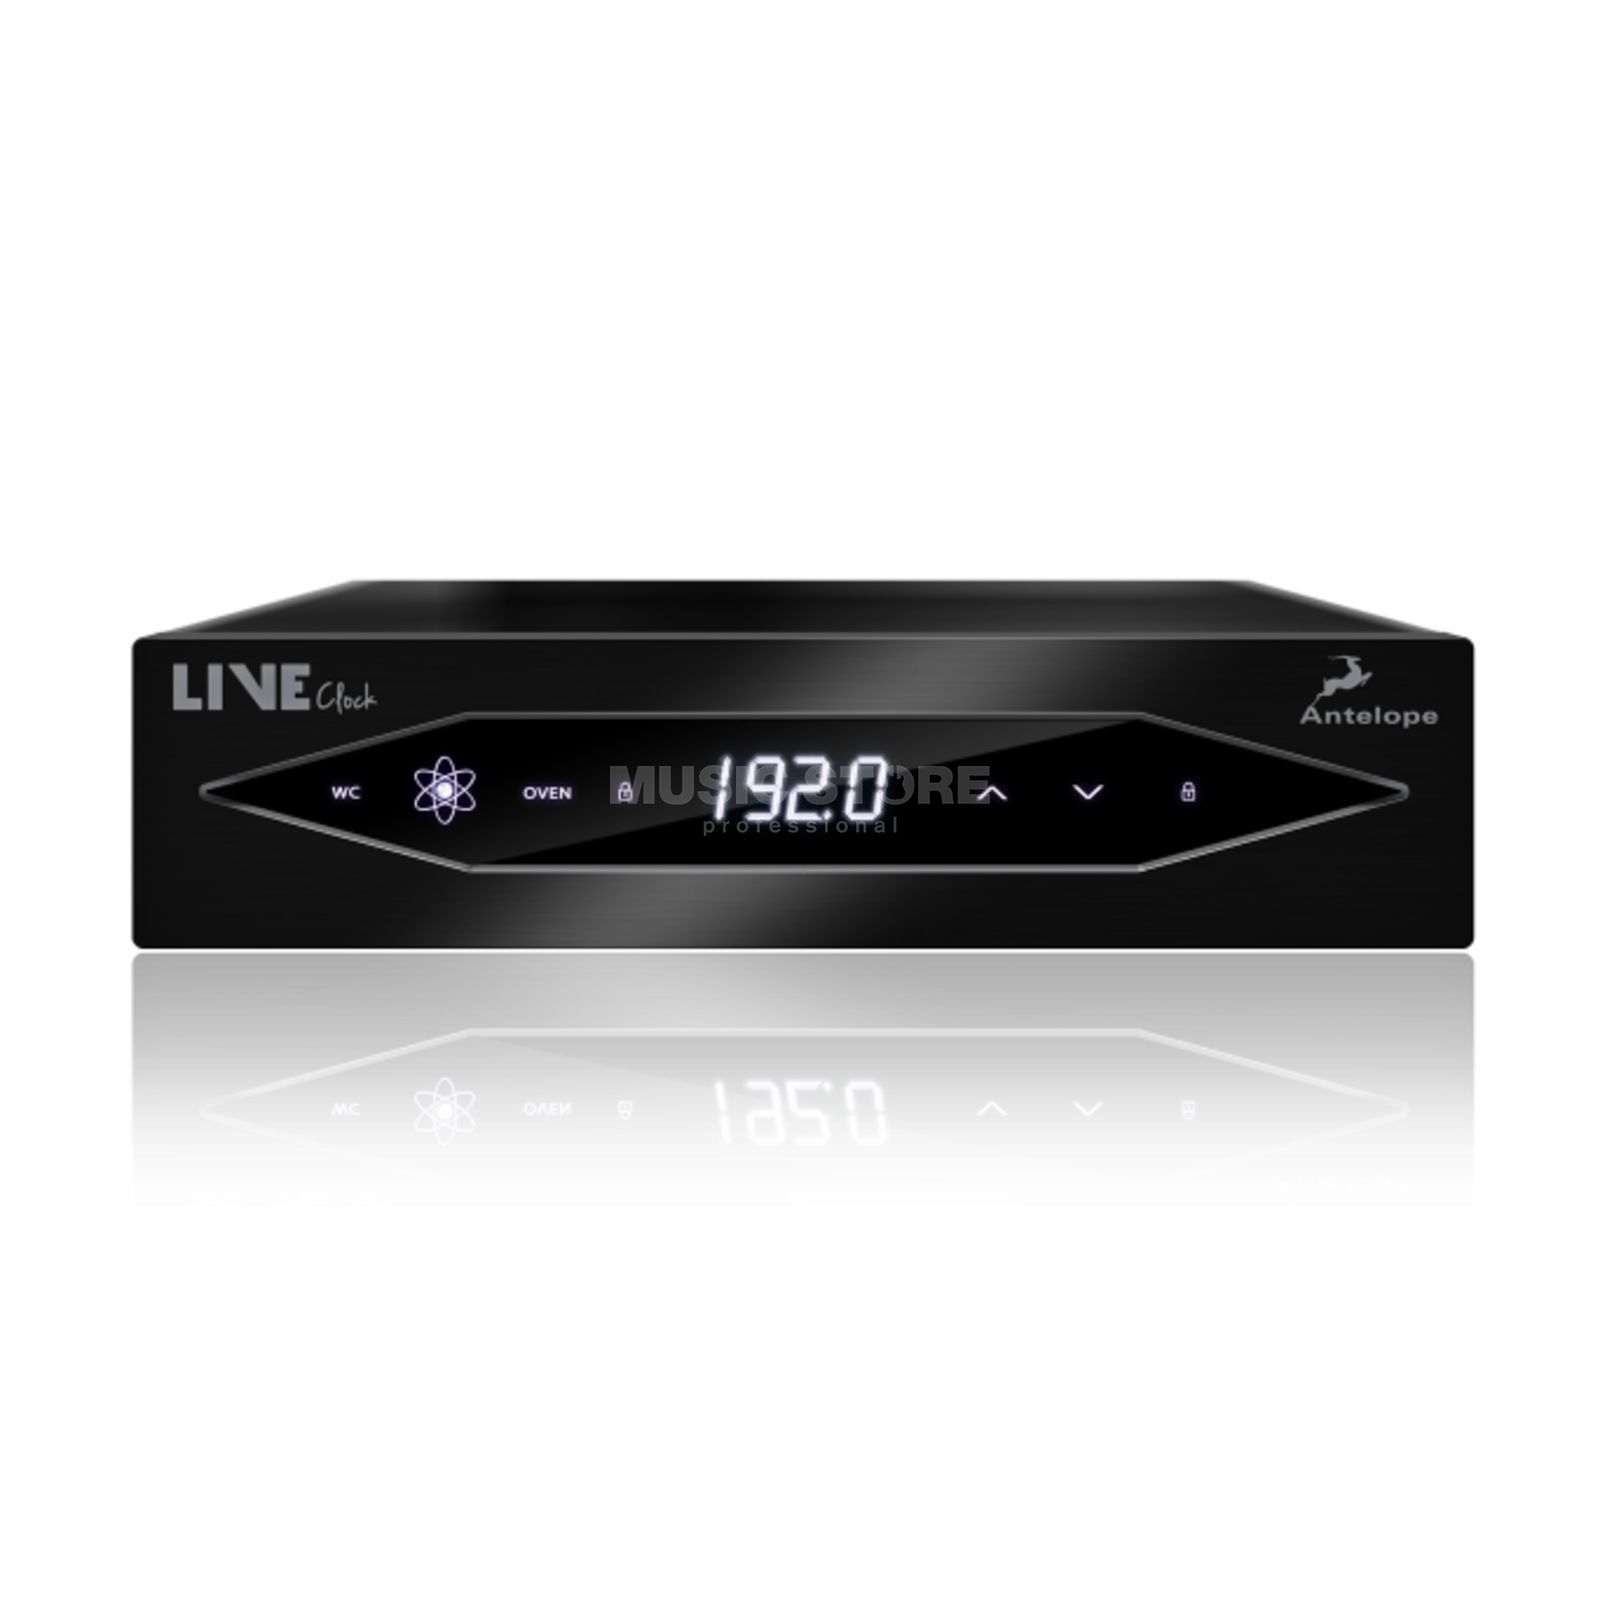 ANTELOPE LiveClock 192 kHz Master Clock Product Image